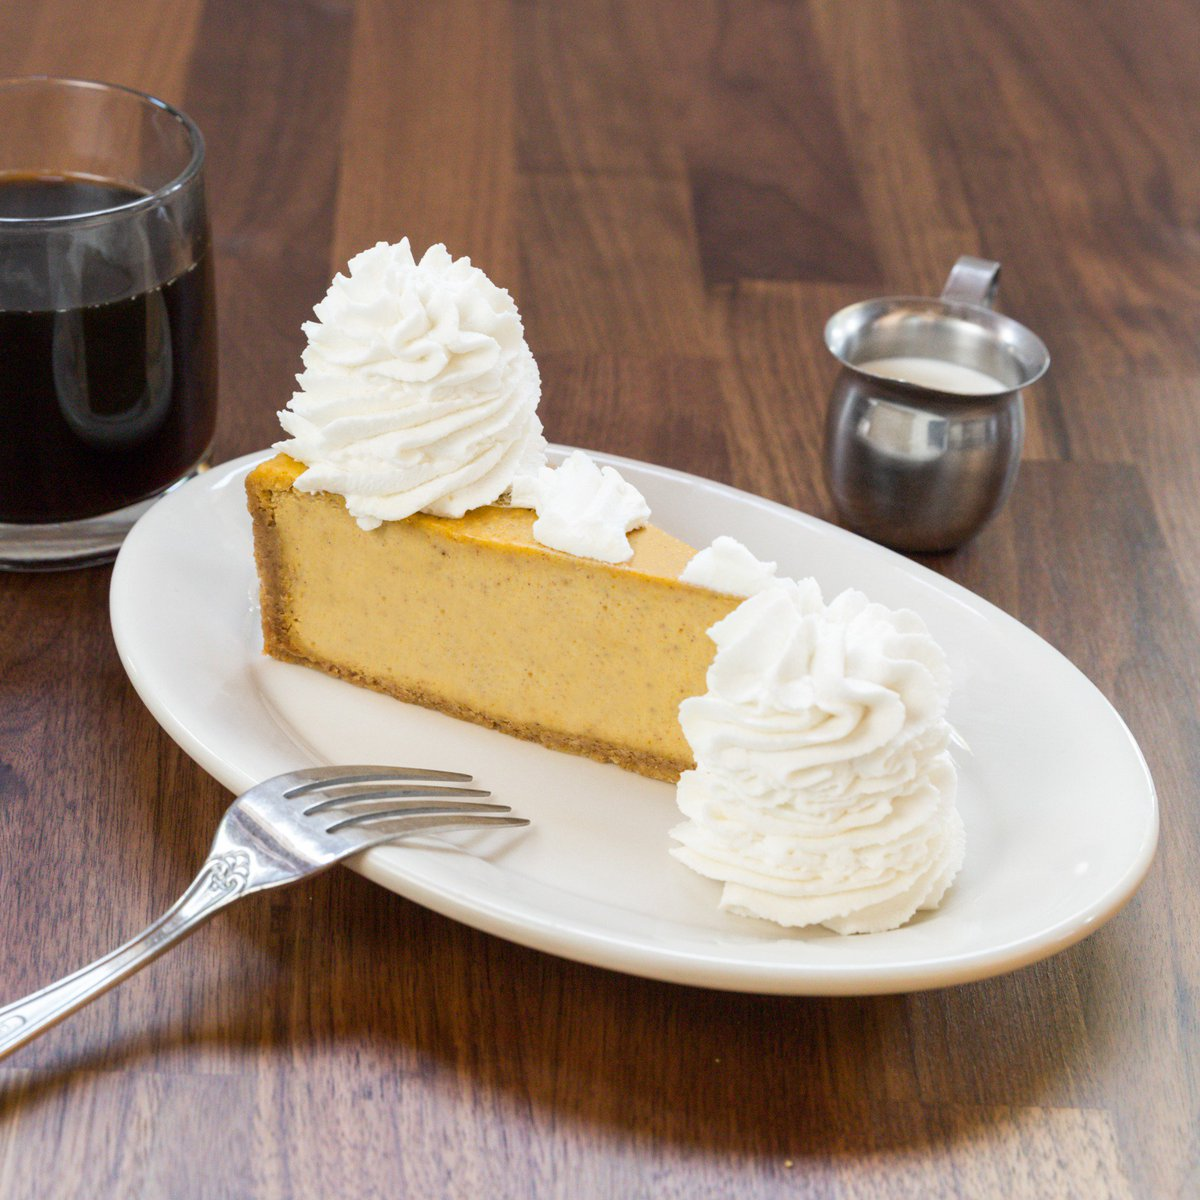 The Cheesecake Factory On Twitter Get Pumped For Pumpkin Cheesecake